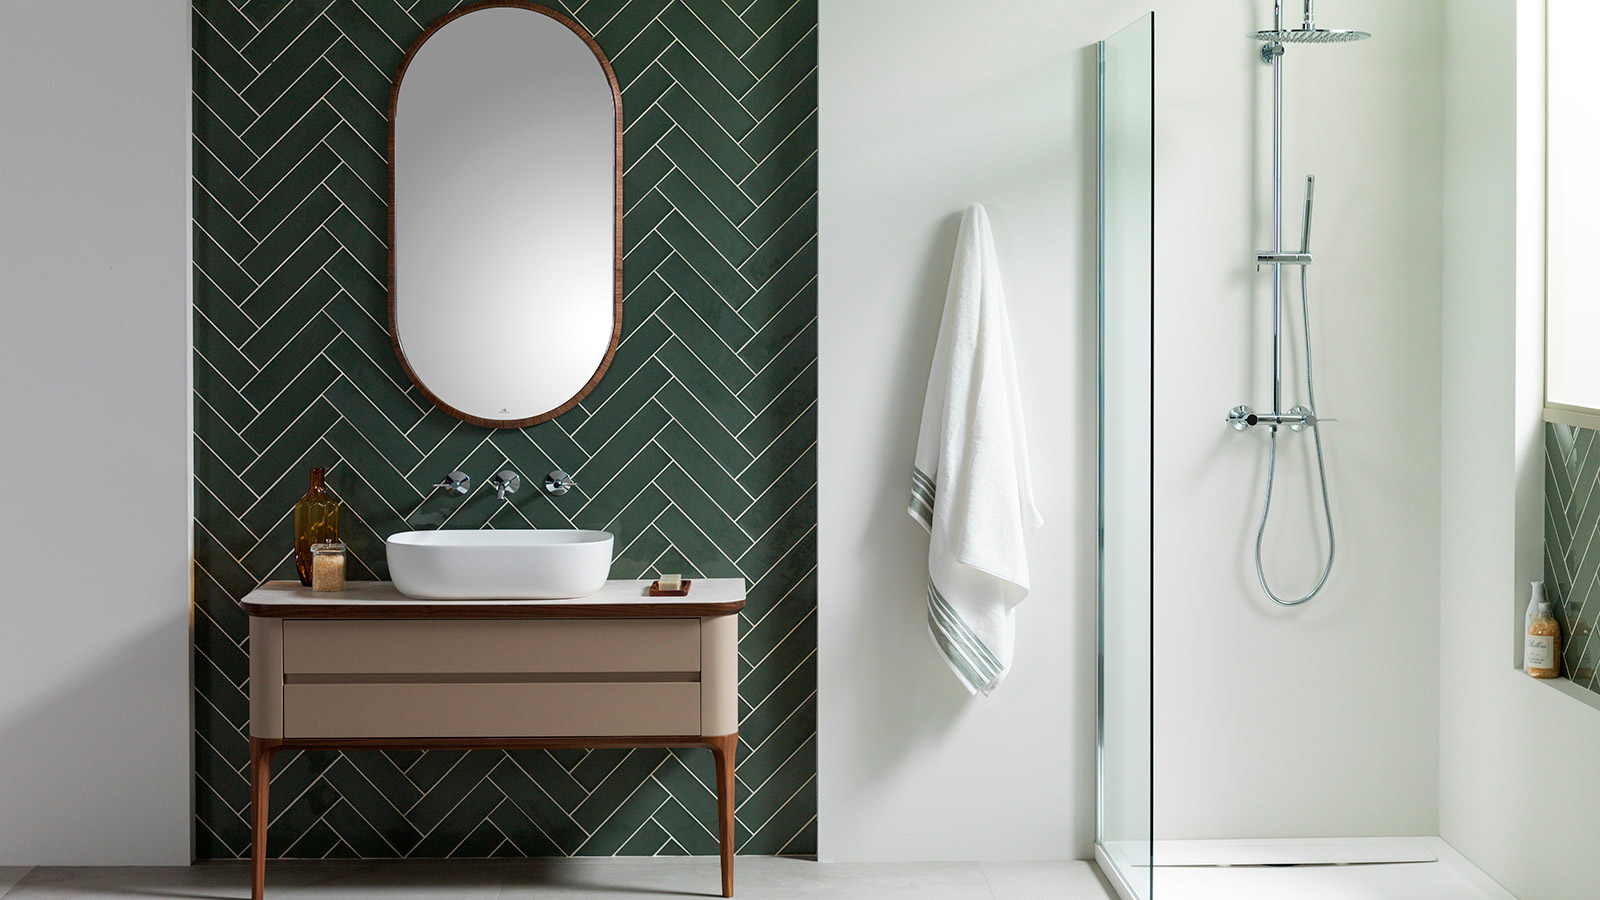 Cersaie 2019: Noken strengthens its 'Waterforest' commitment with collections which are more sustainable and digital